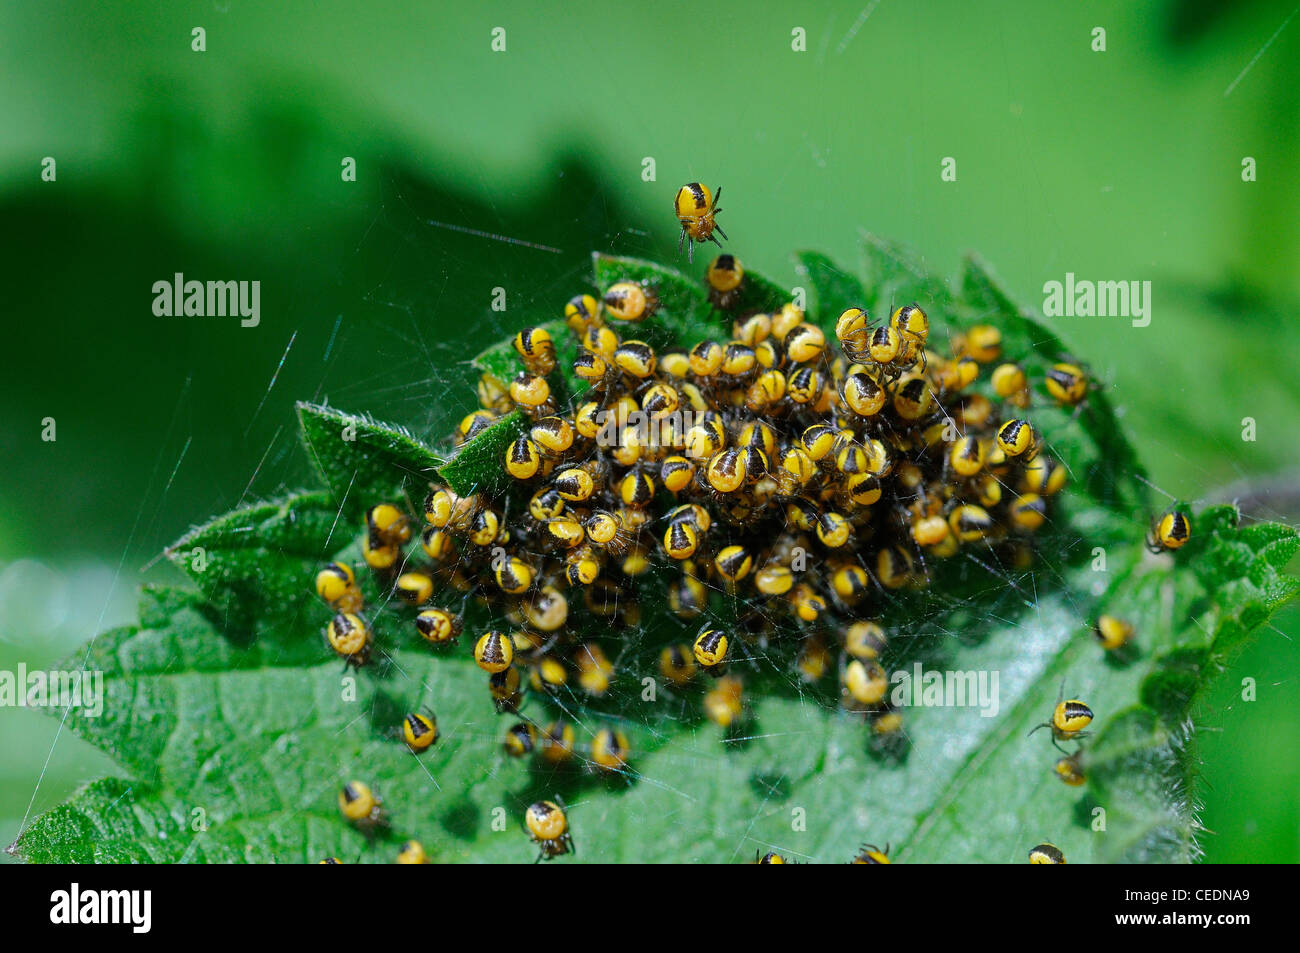 Garden Orb Spider (Araneus diadematus) mass of newly hatched baby spiders, on common nettle plant, Kent, UK - Stock Image